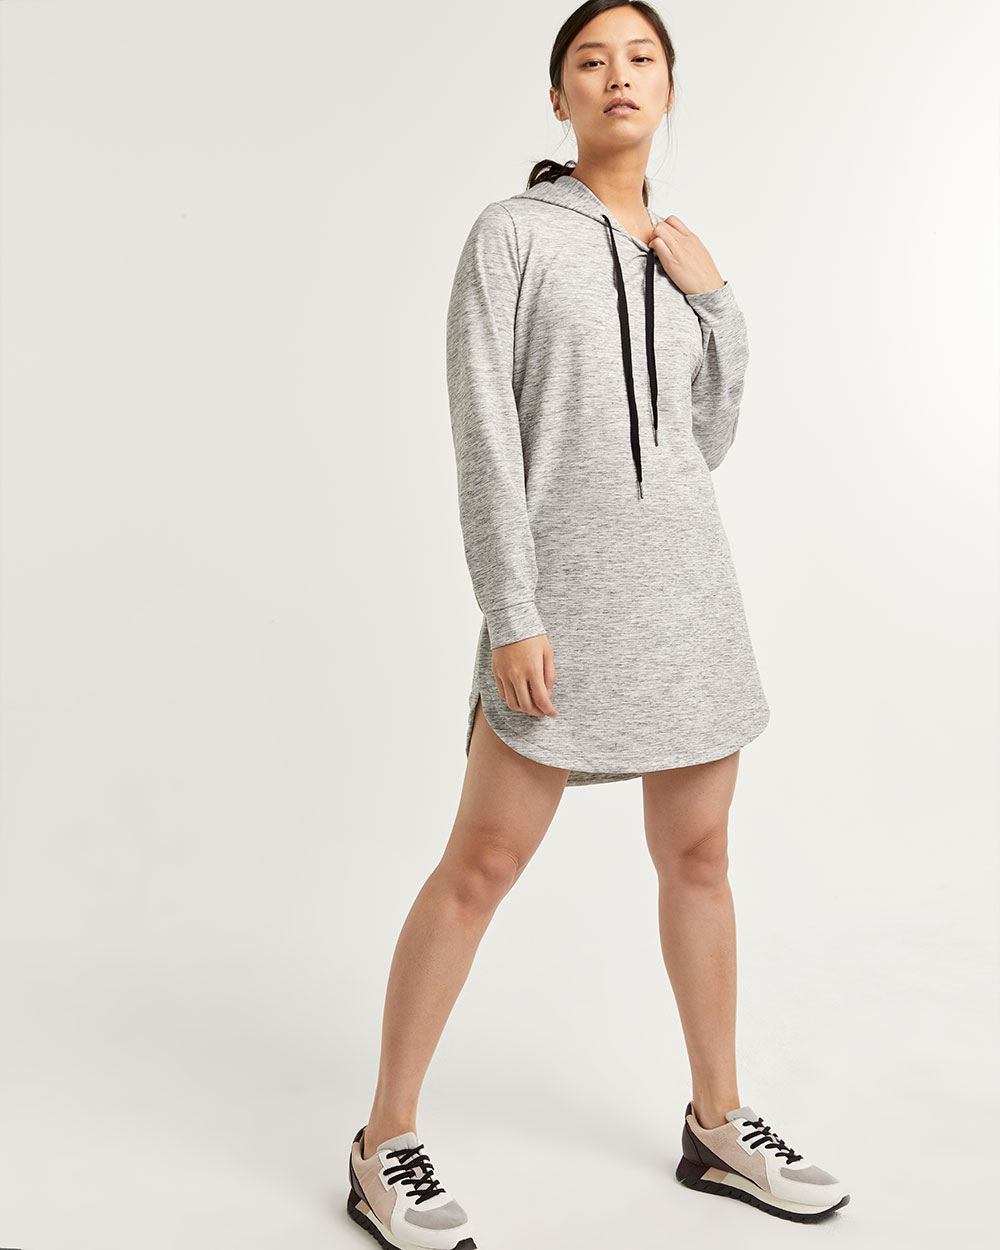 French Terry Hooded Dress Hyba